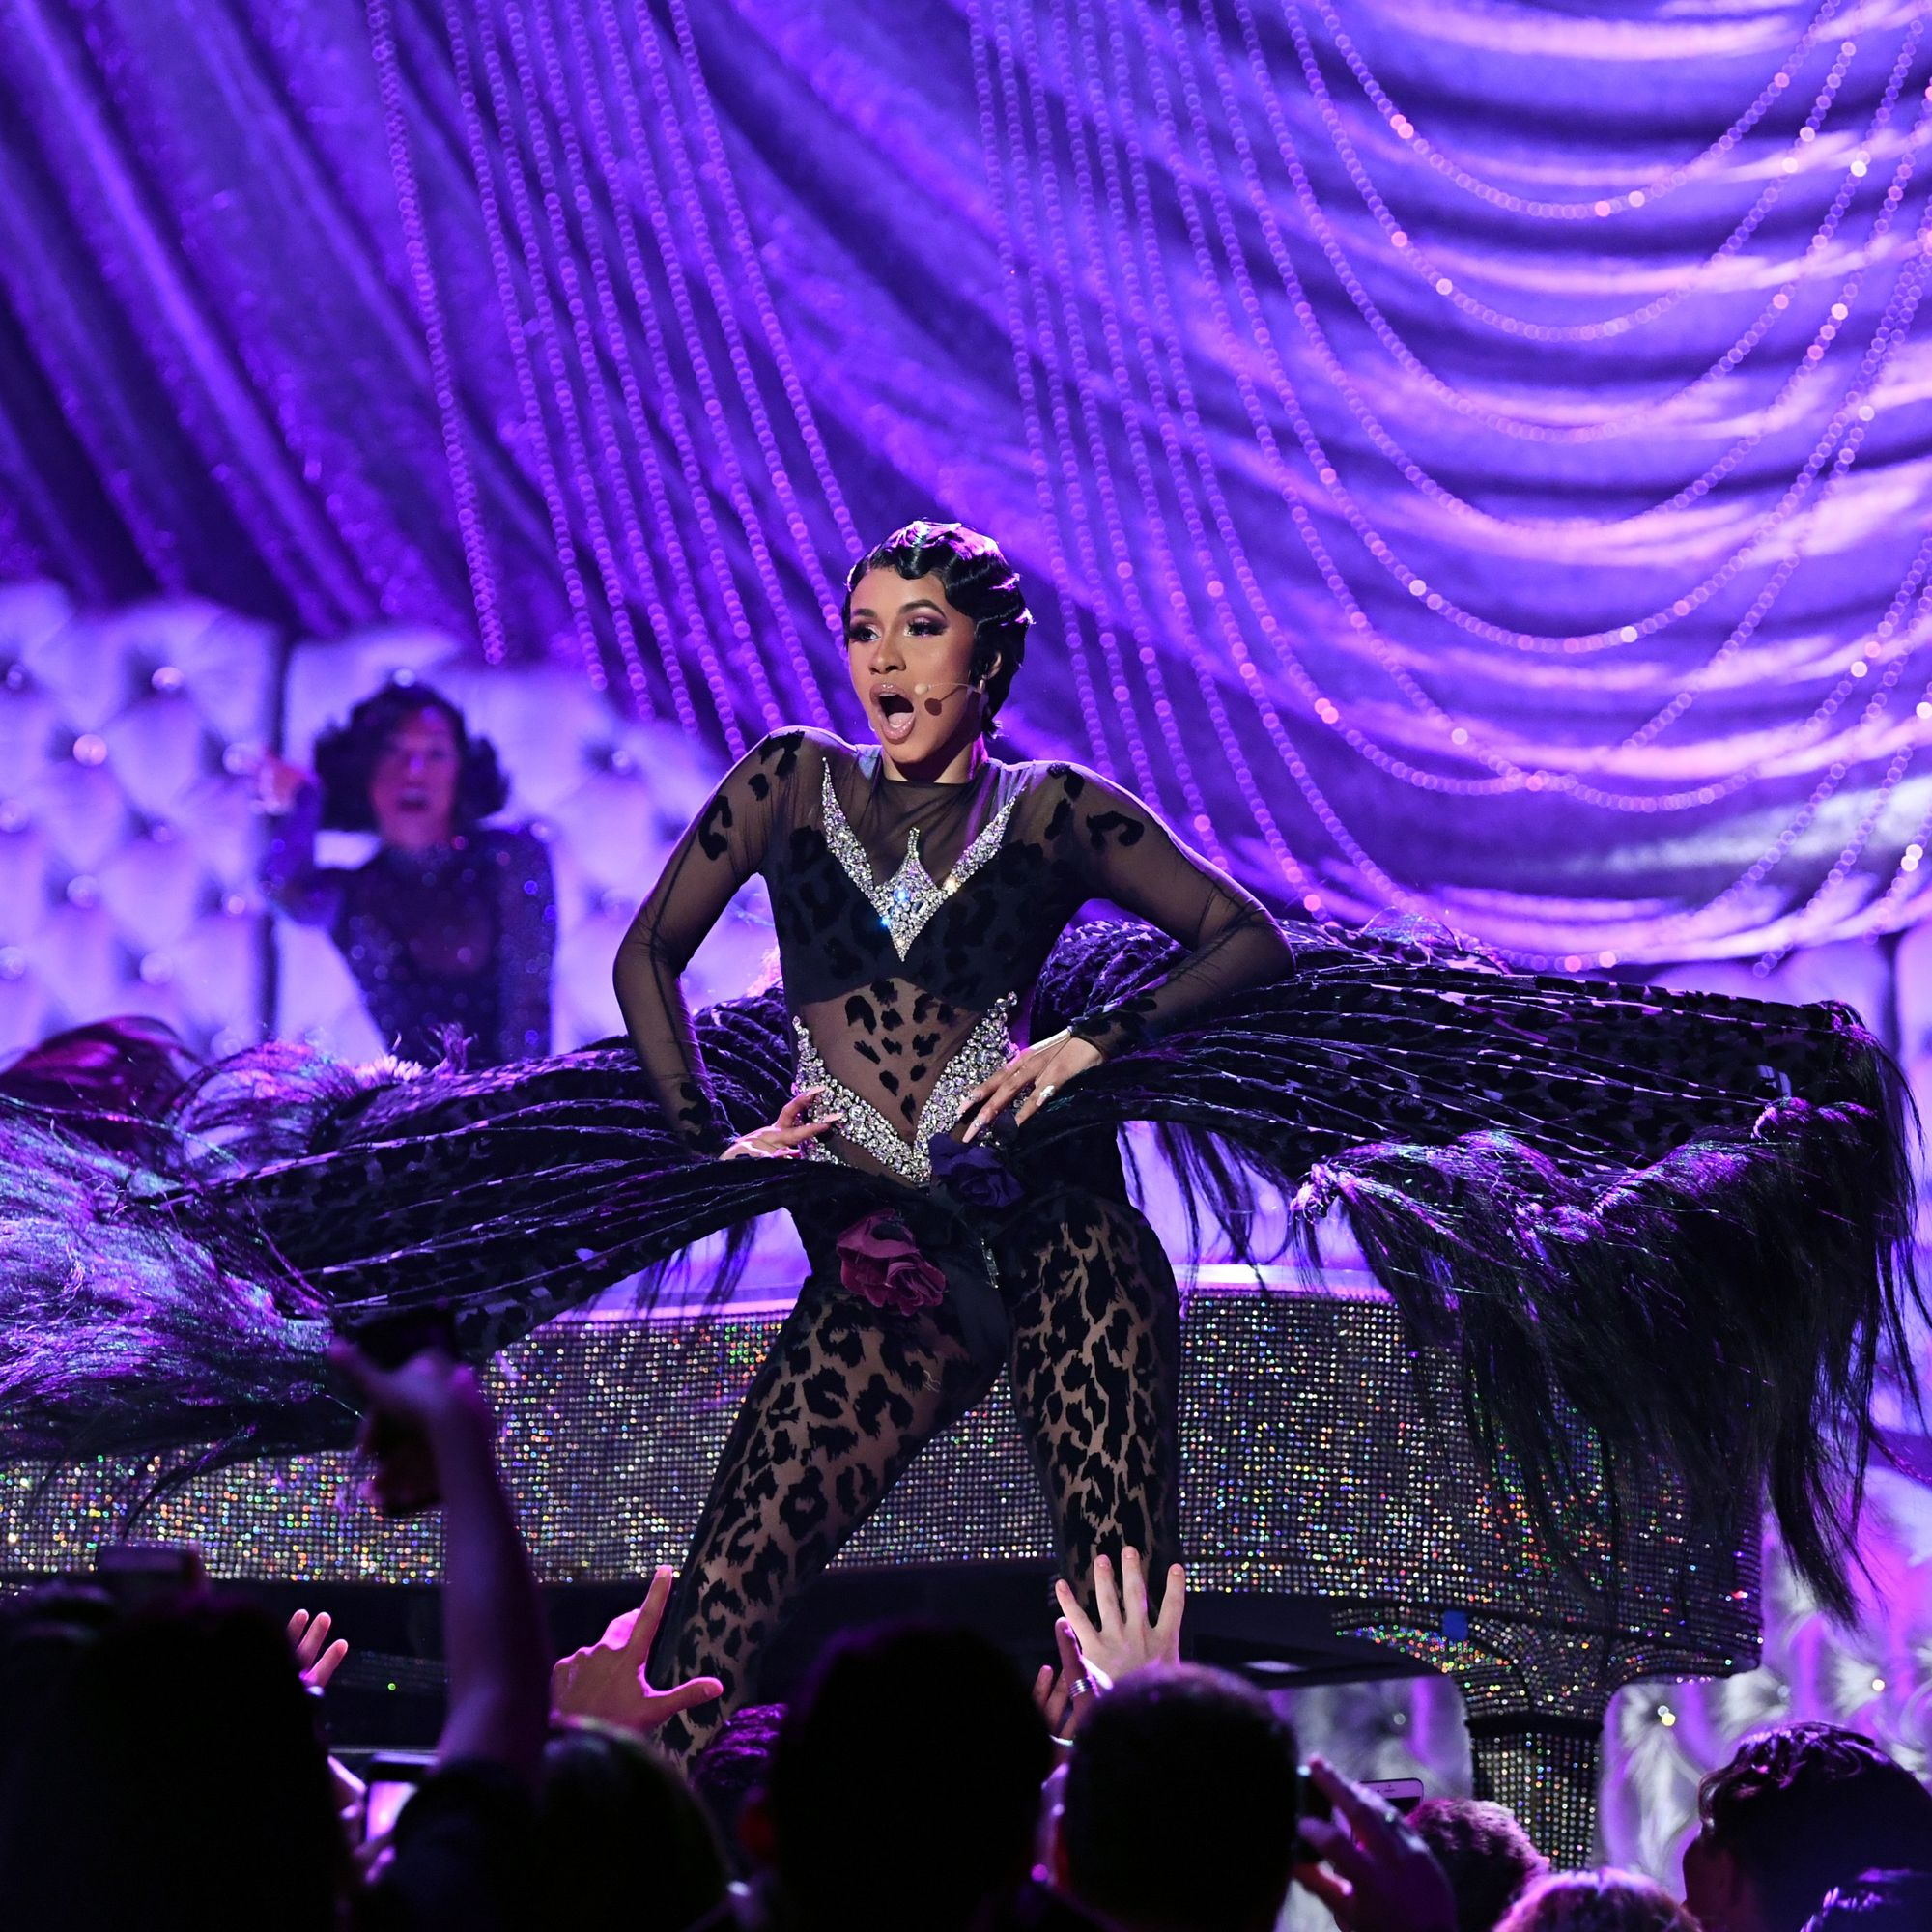 La rappeuse new-yorkaise Cardi B lors de sa performance aux Grammy Awards à Los Angeles, le 10 février 2019.